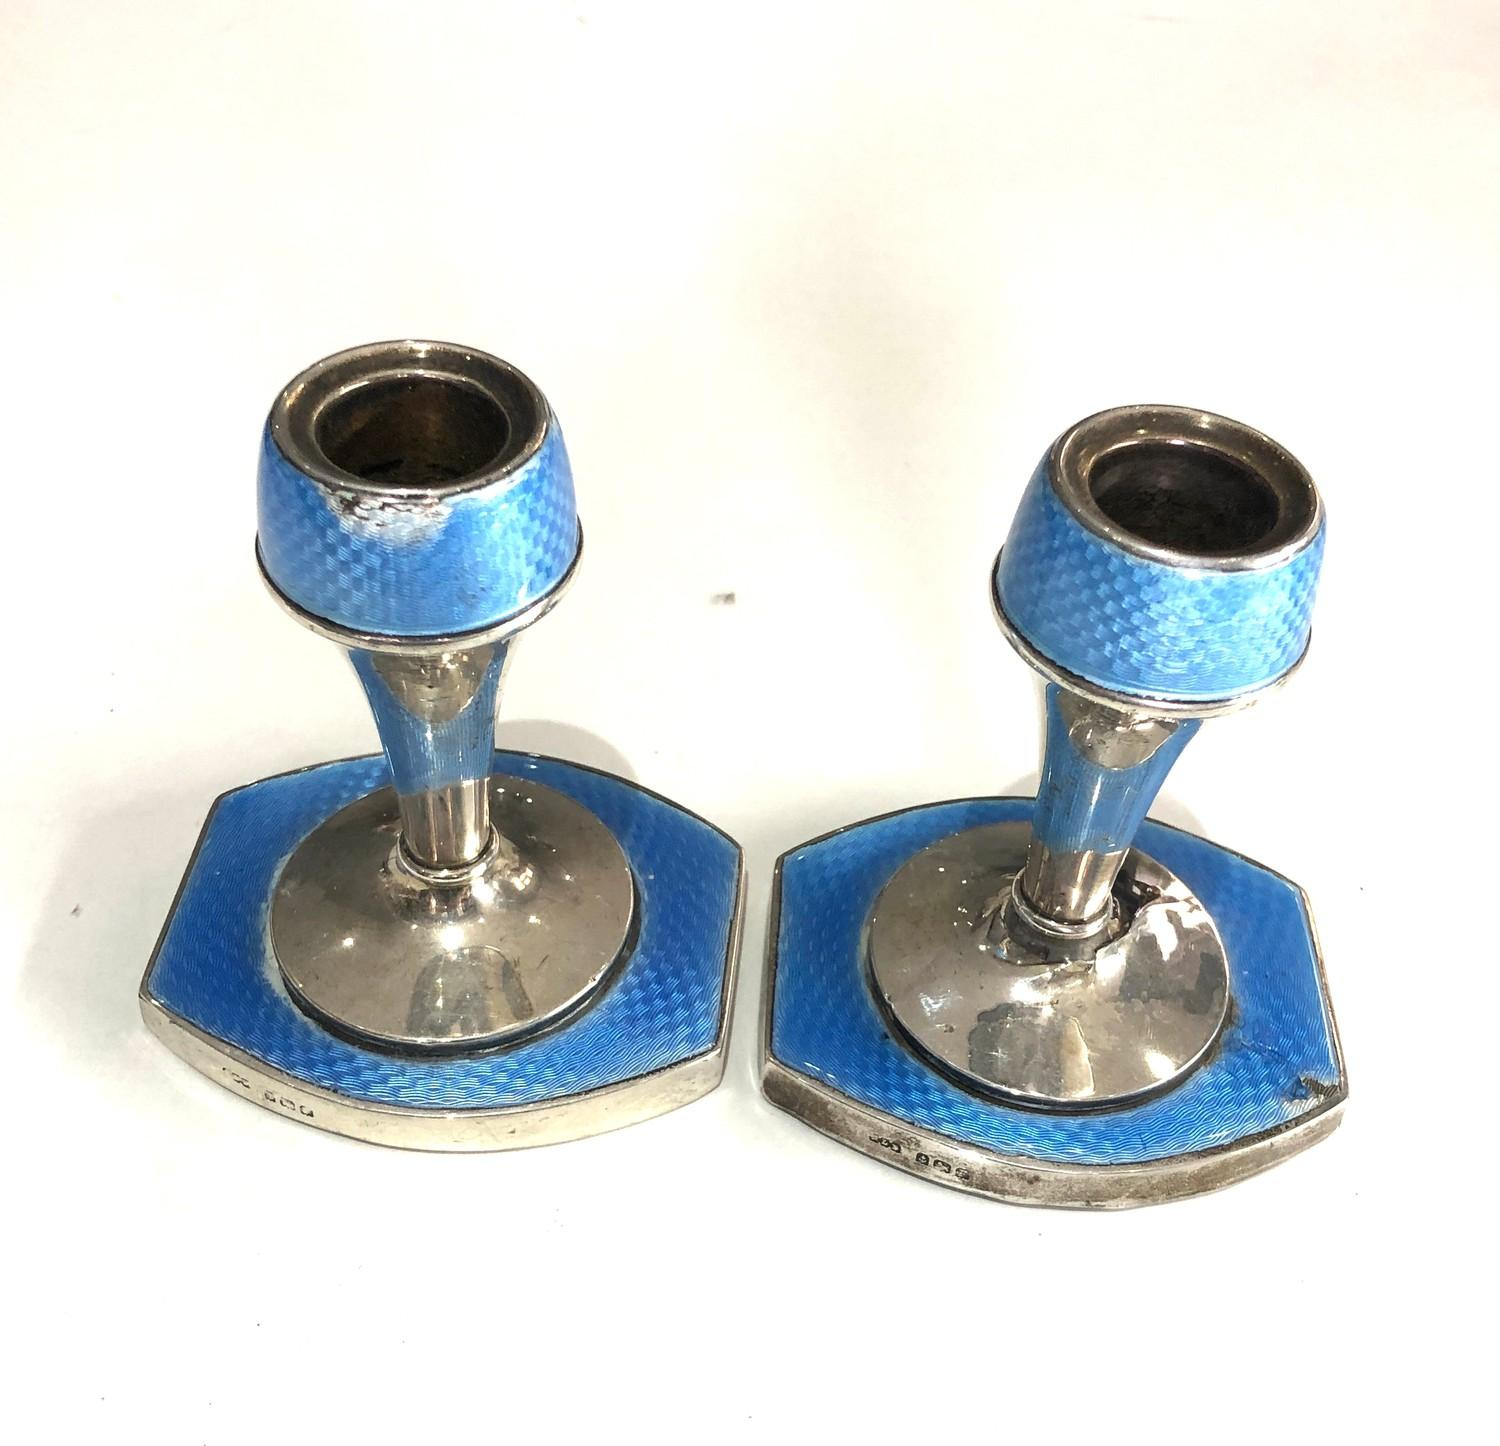 Pair of antique silver and enamel candlesticks measure approx height 9.3cm by 8cm wide filled - Image 2 of 5